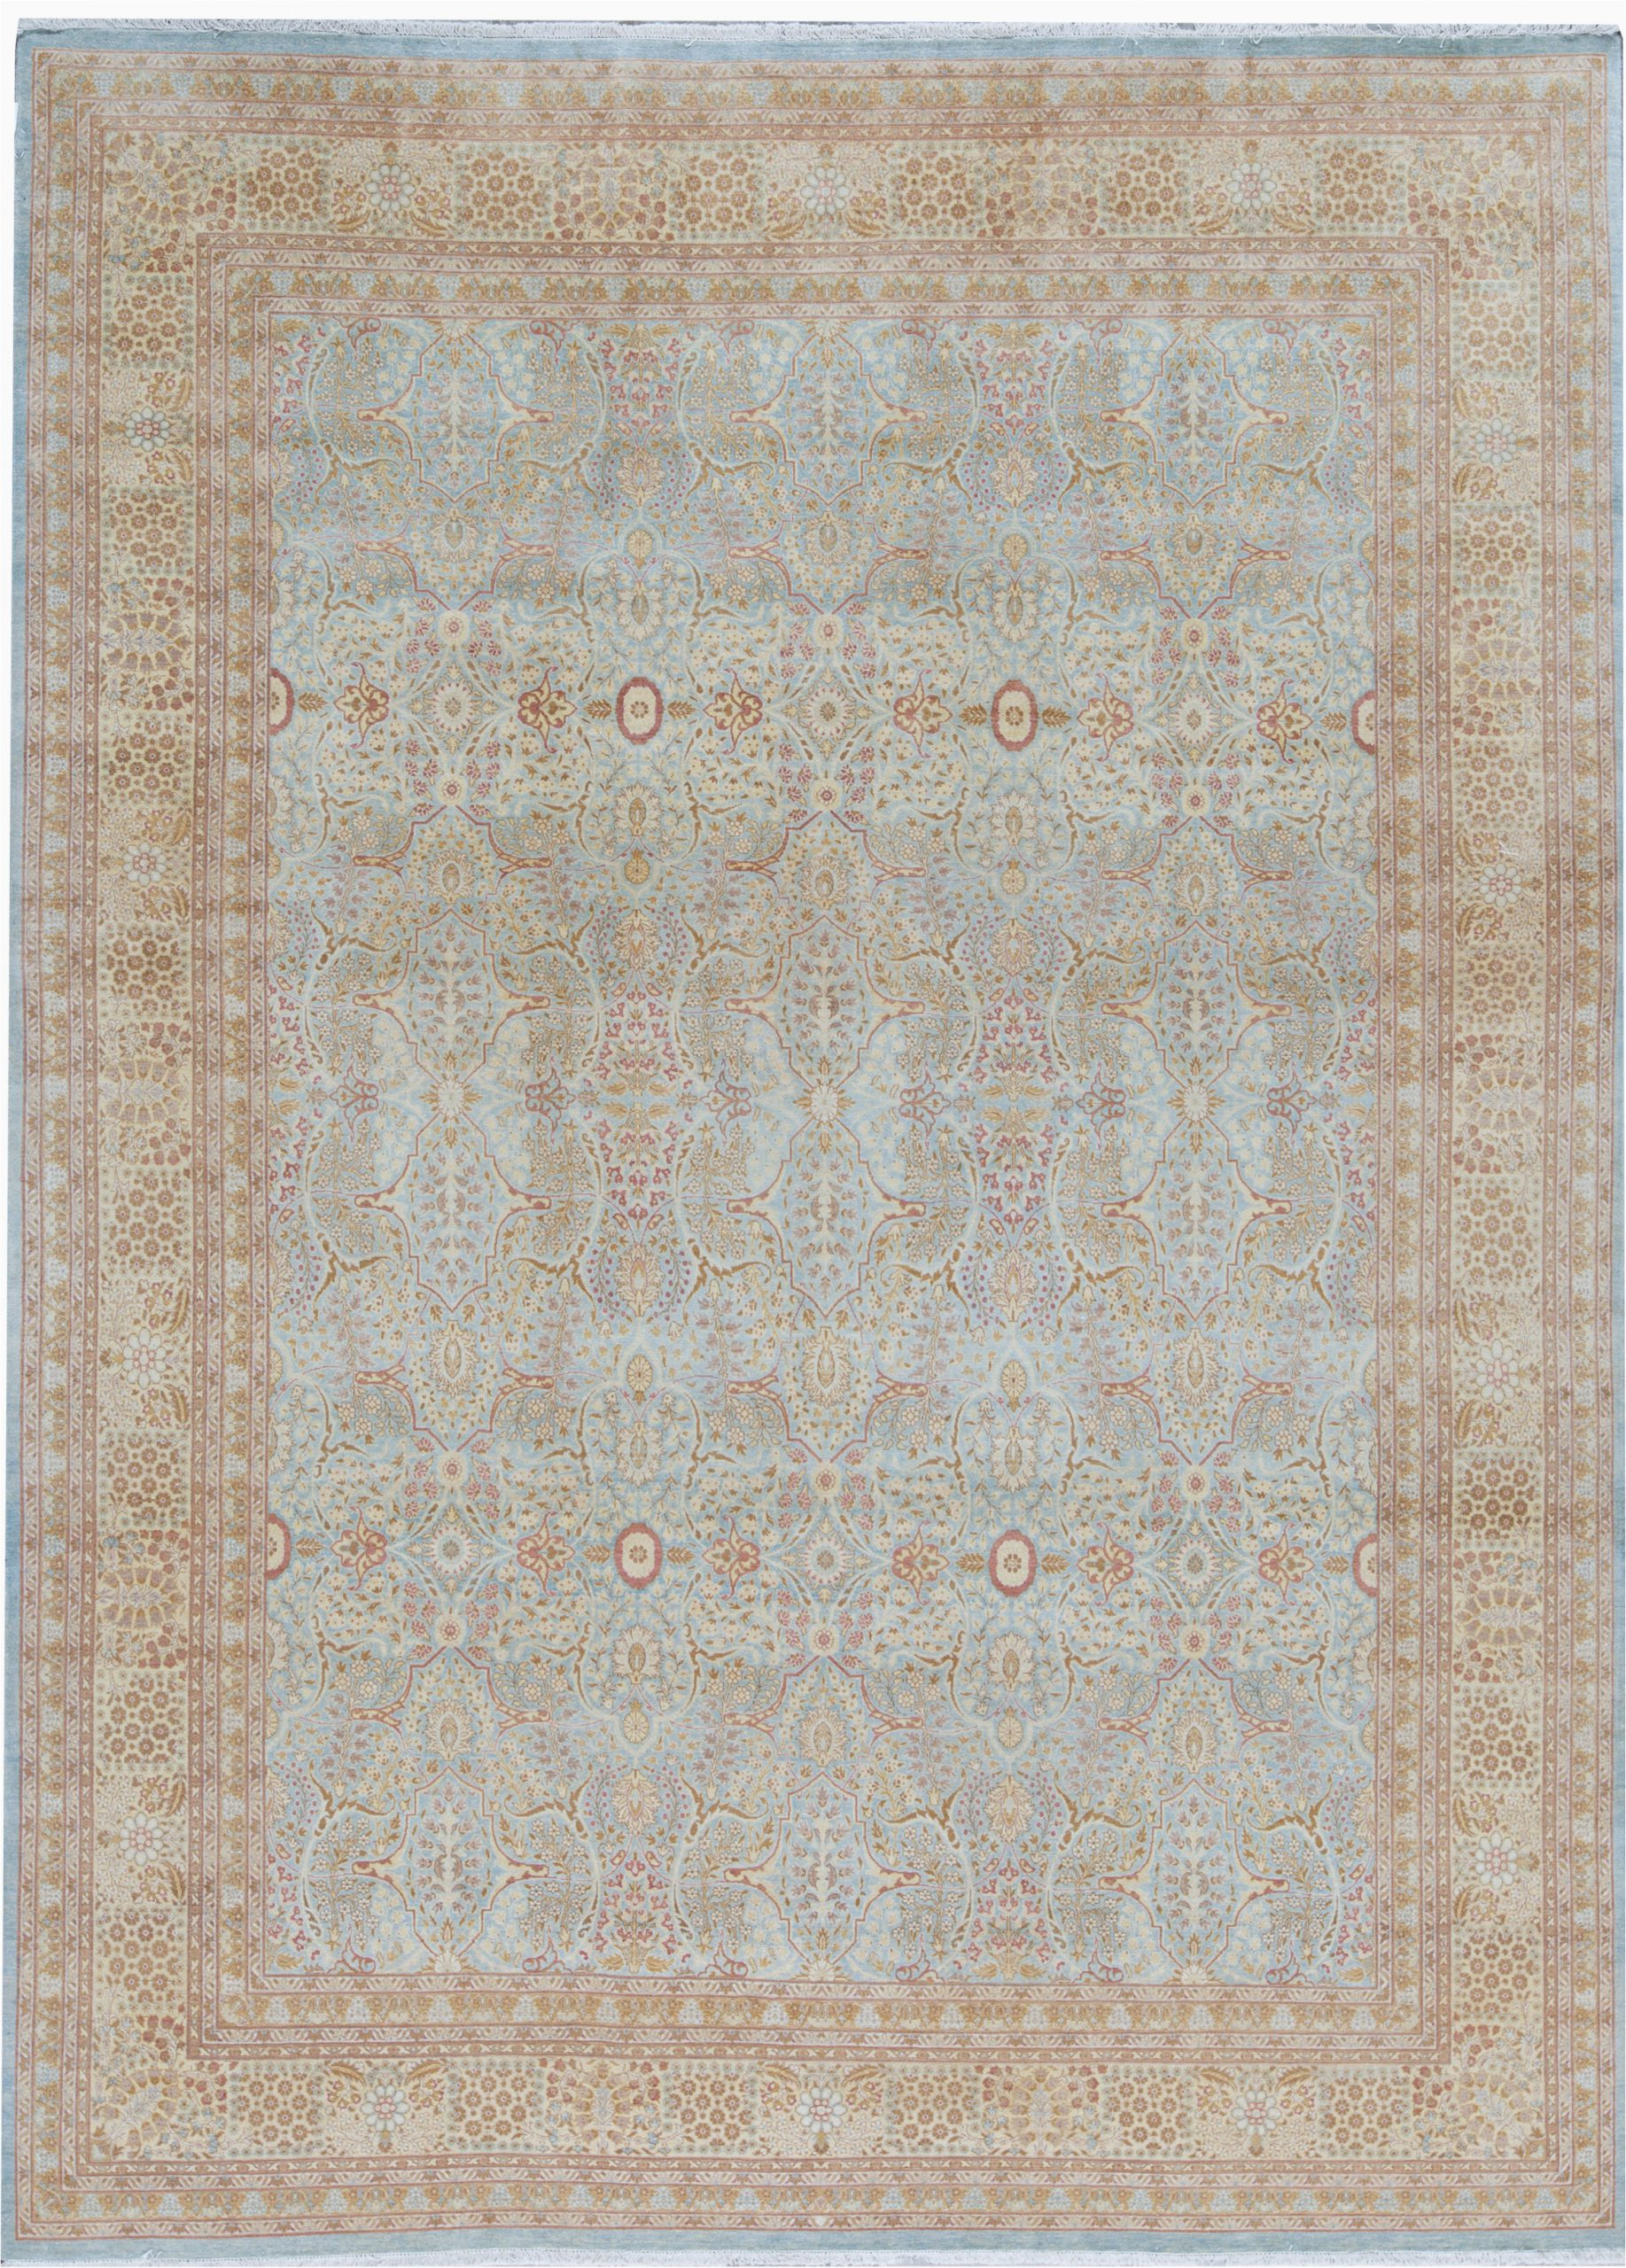 oriental hand knotted wool light bluecream area rug